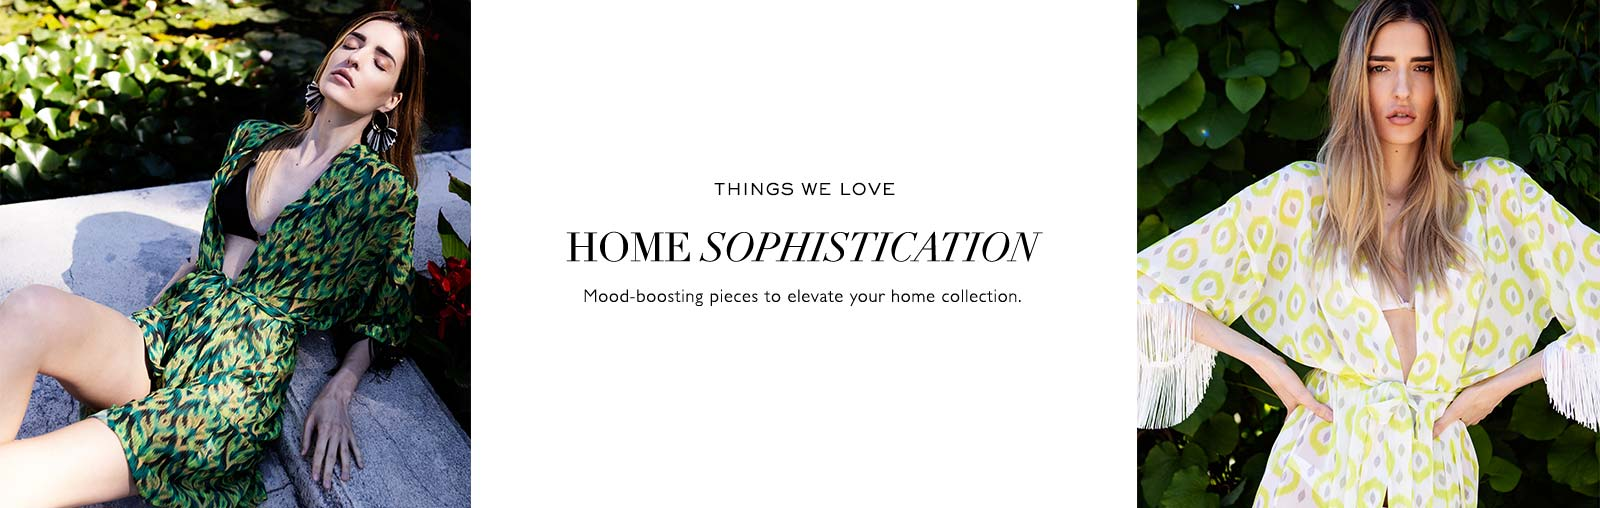 THINGS WE LOVE | HOME SOPHISTICATION | Mood-boosting pieces to elevate your home collection by Van Dlasky.